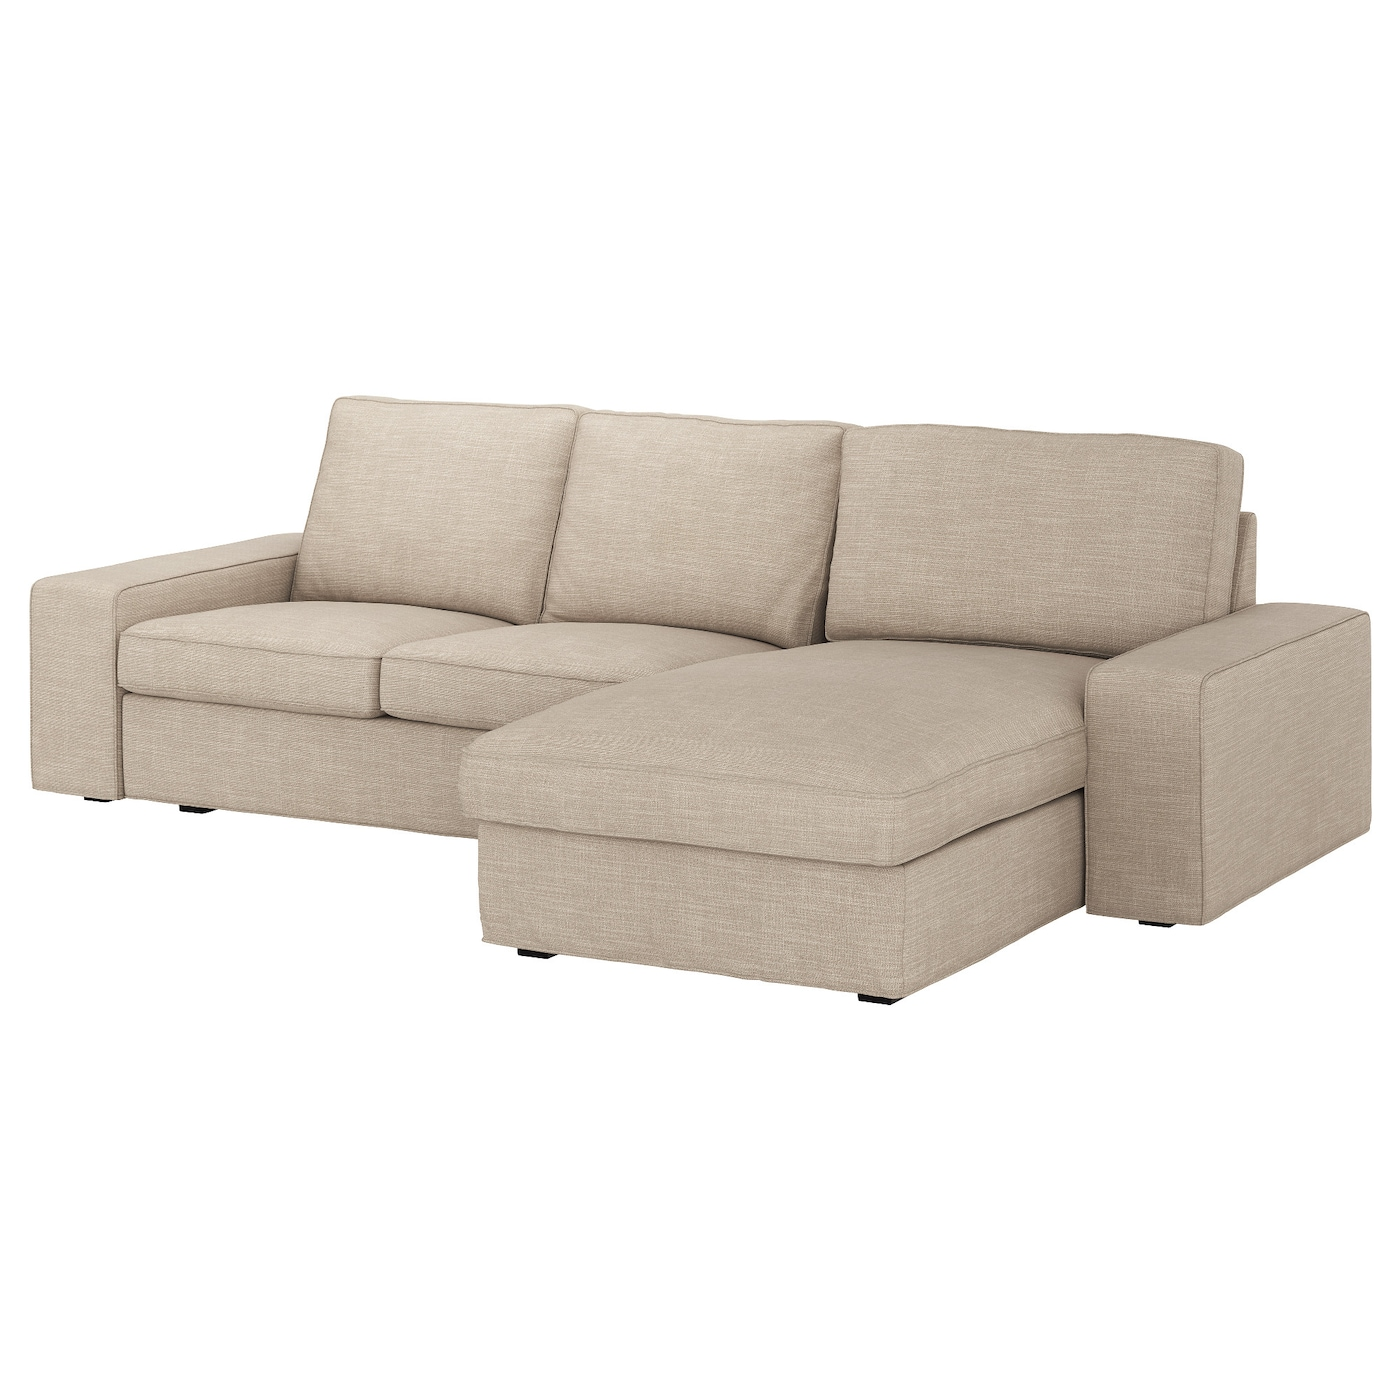 Kivik 3 seat sofa with chaise longue hillared beige ikea for Sofa jugendzimmer ikea